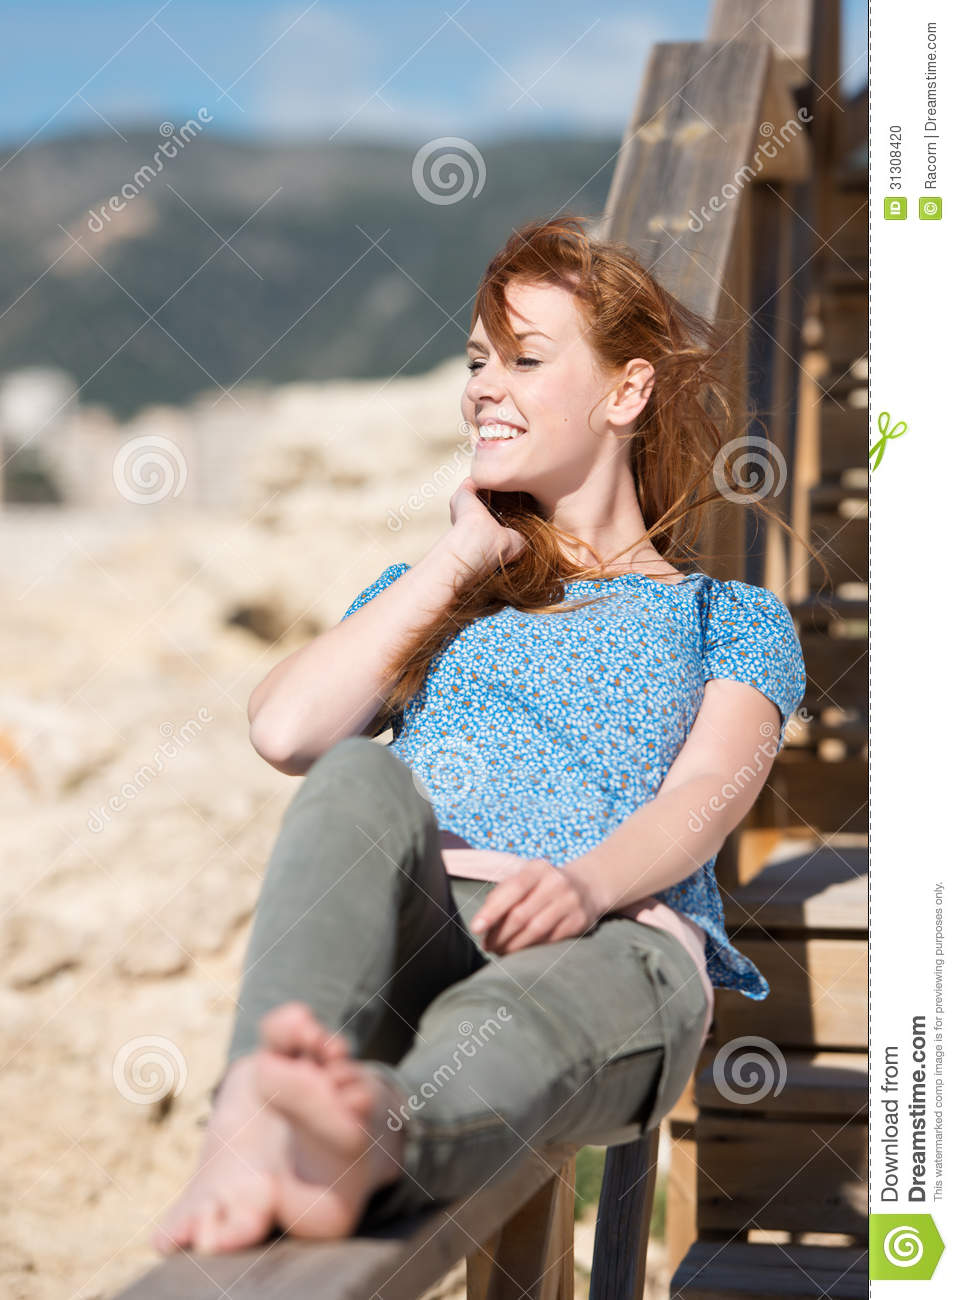 Smiling Woman Relaxing In The Sun Stock Photo  Image